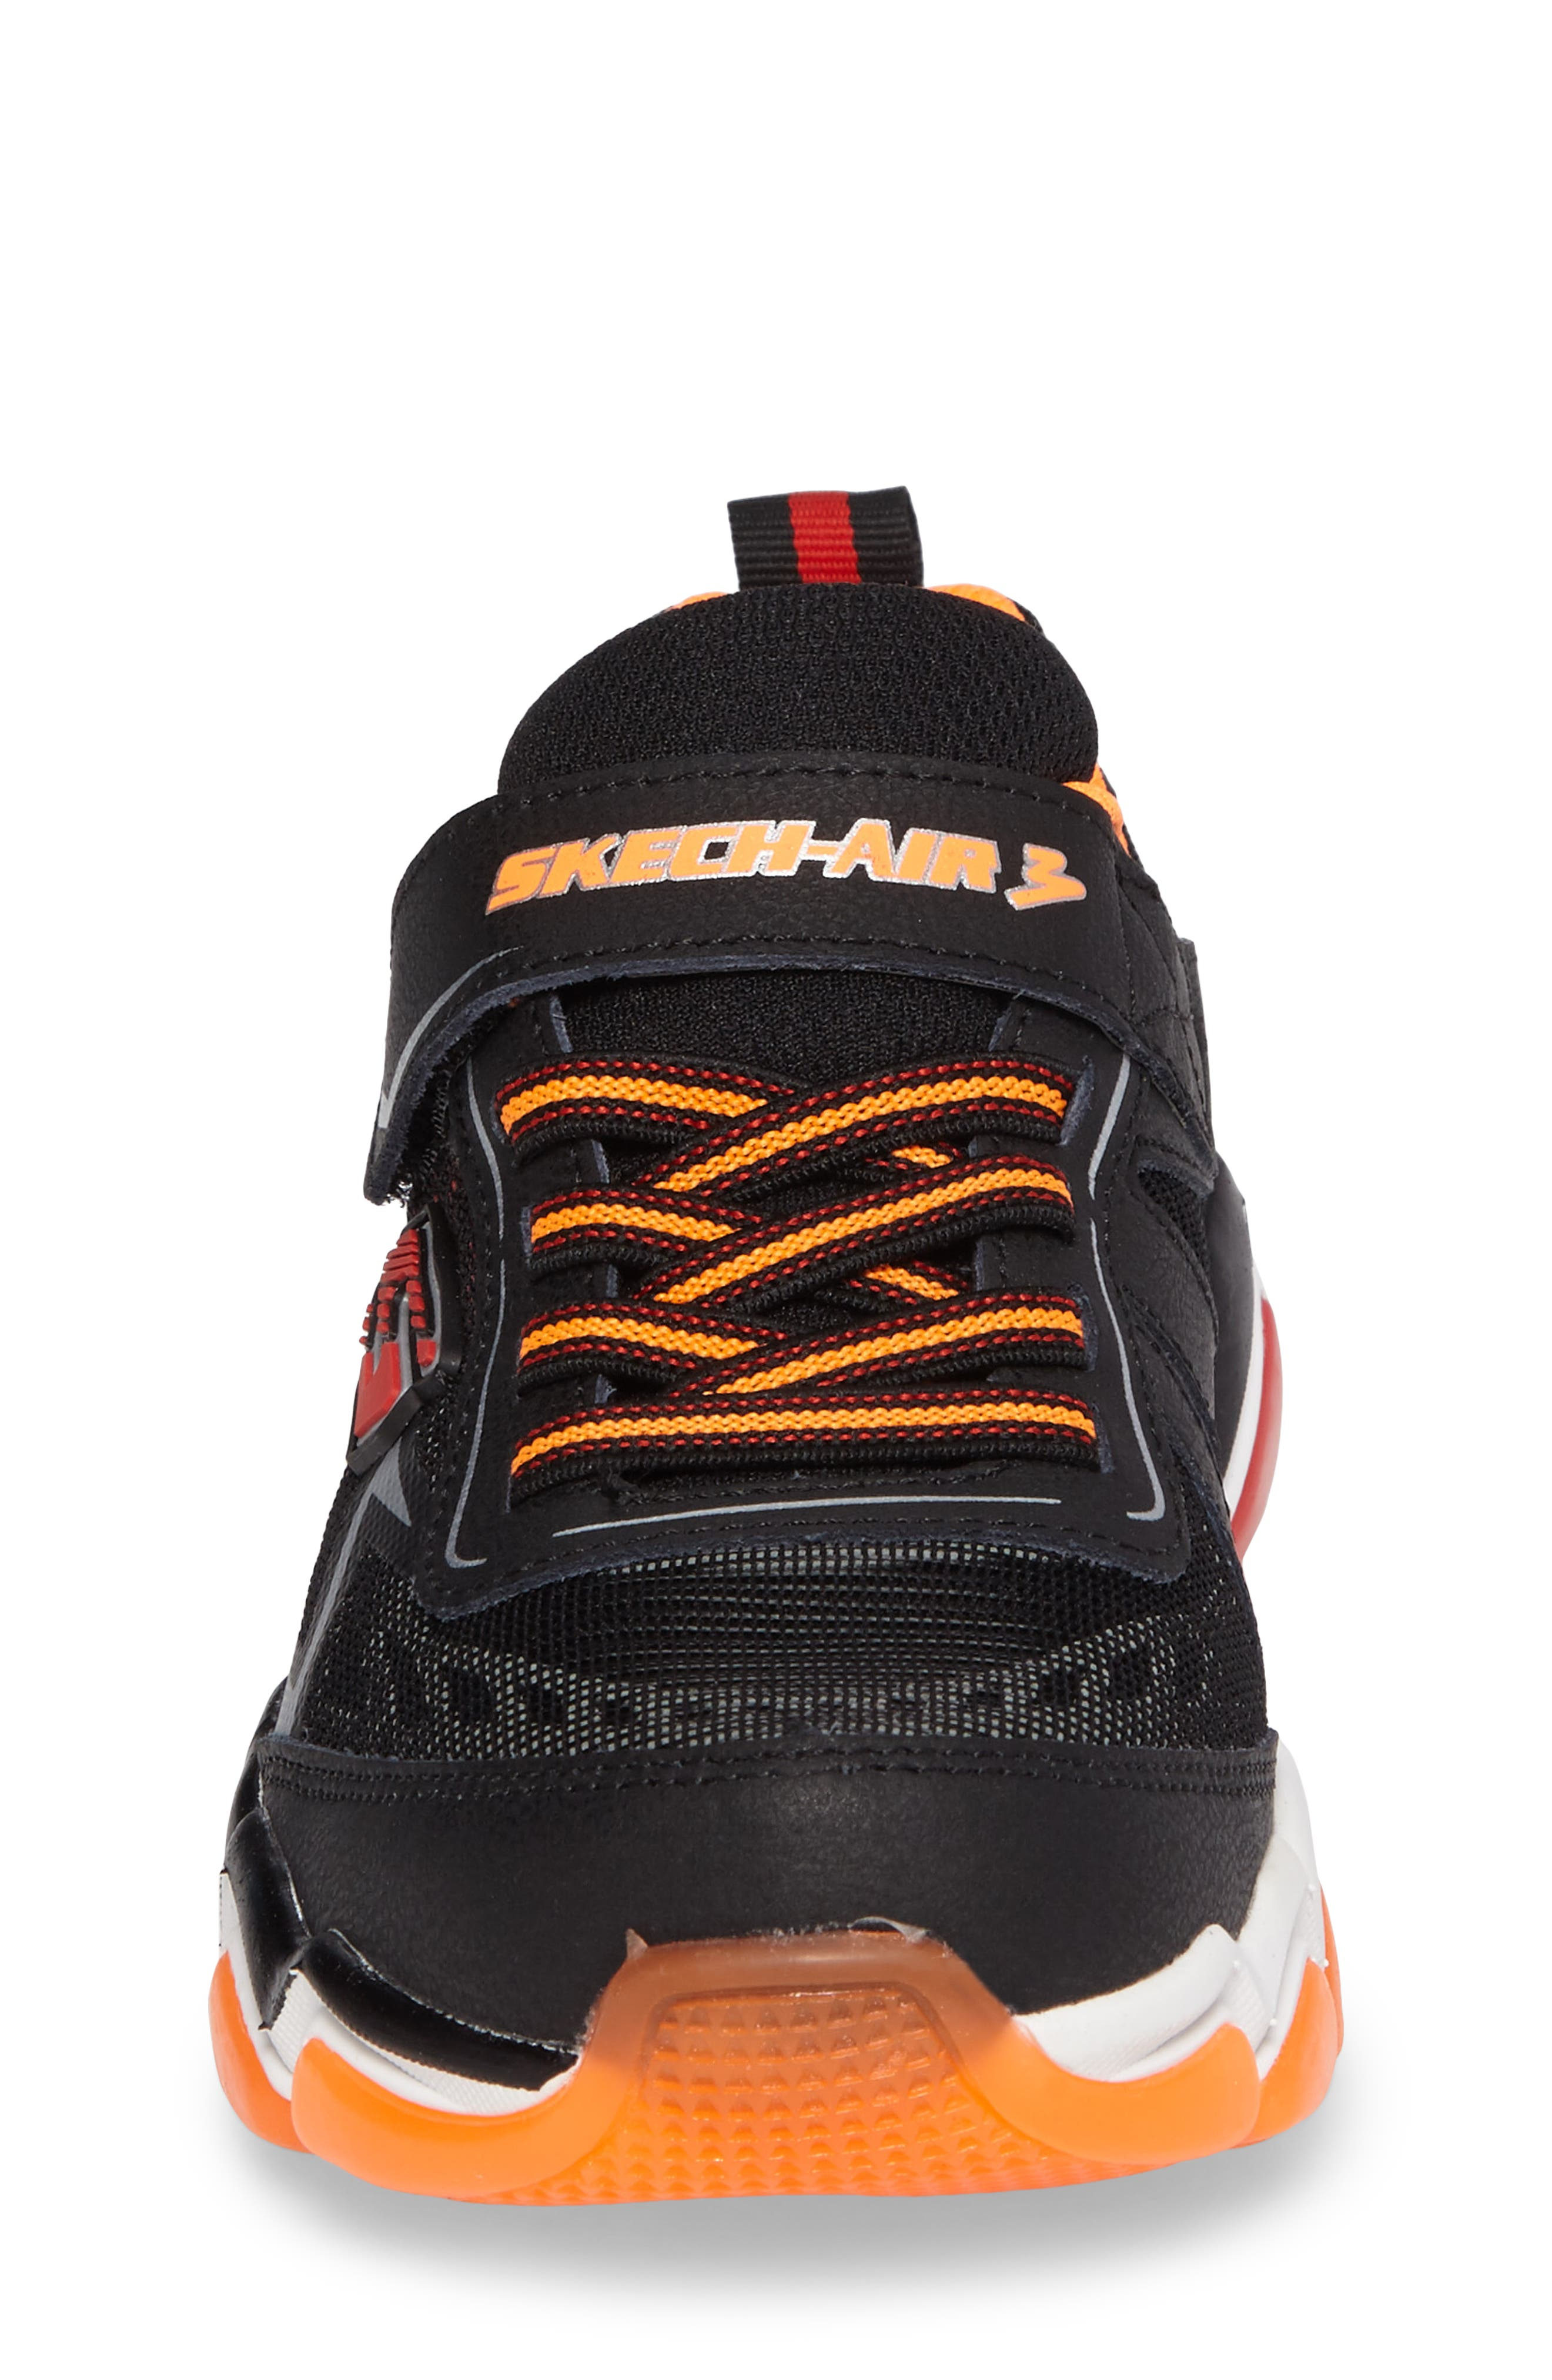 Skech-Air 3.0 Downswitch Sneaker,                             Alternate thumbnail 7, color,